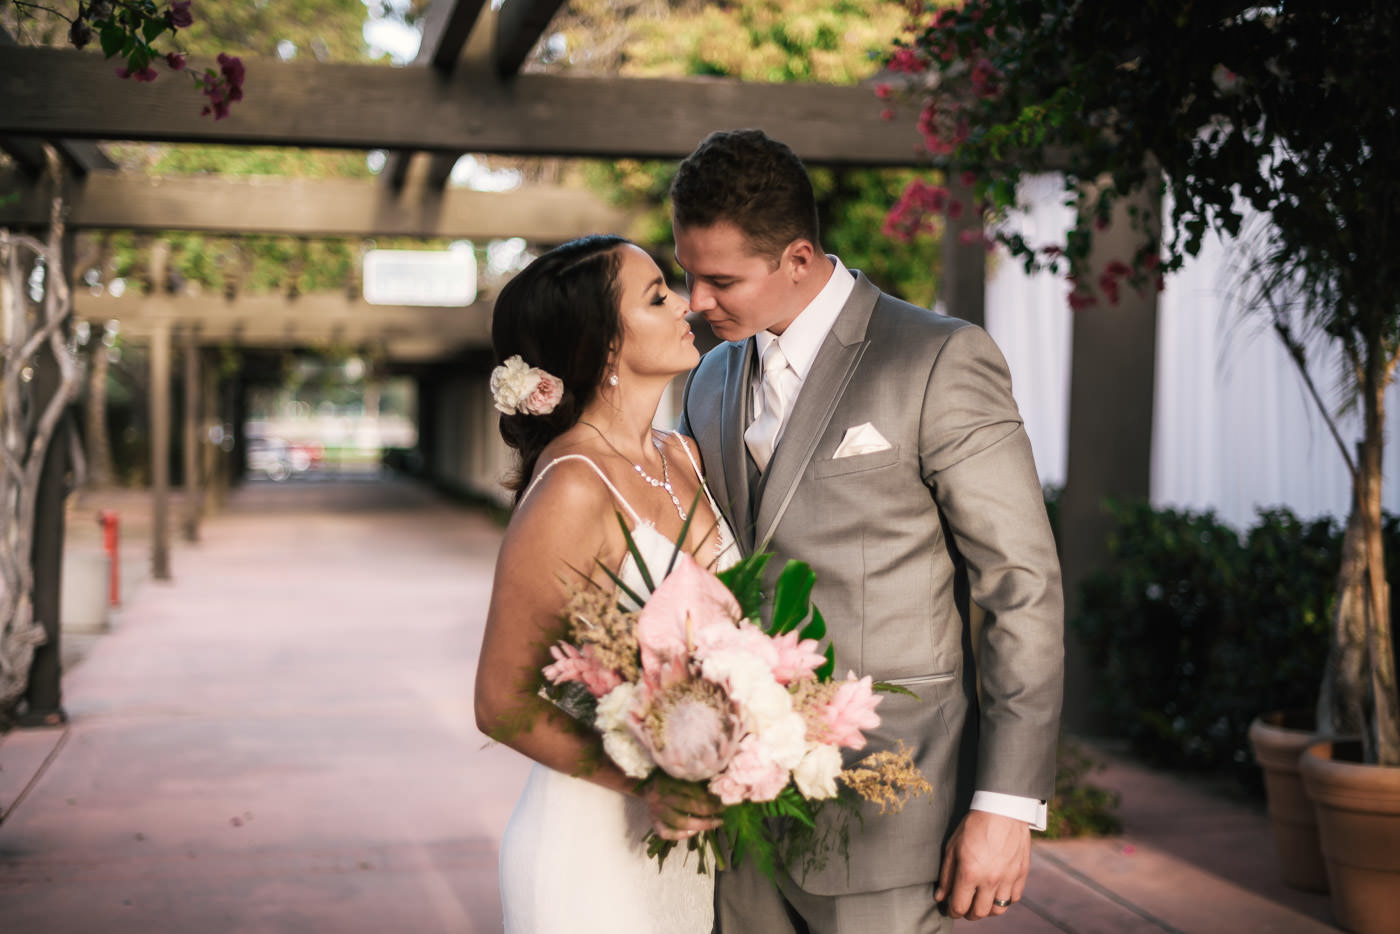 Romantic wedding photography at Marina Village in San Diego.